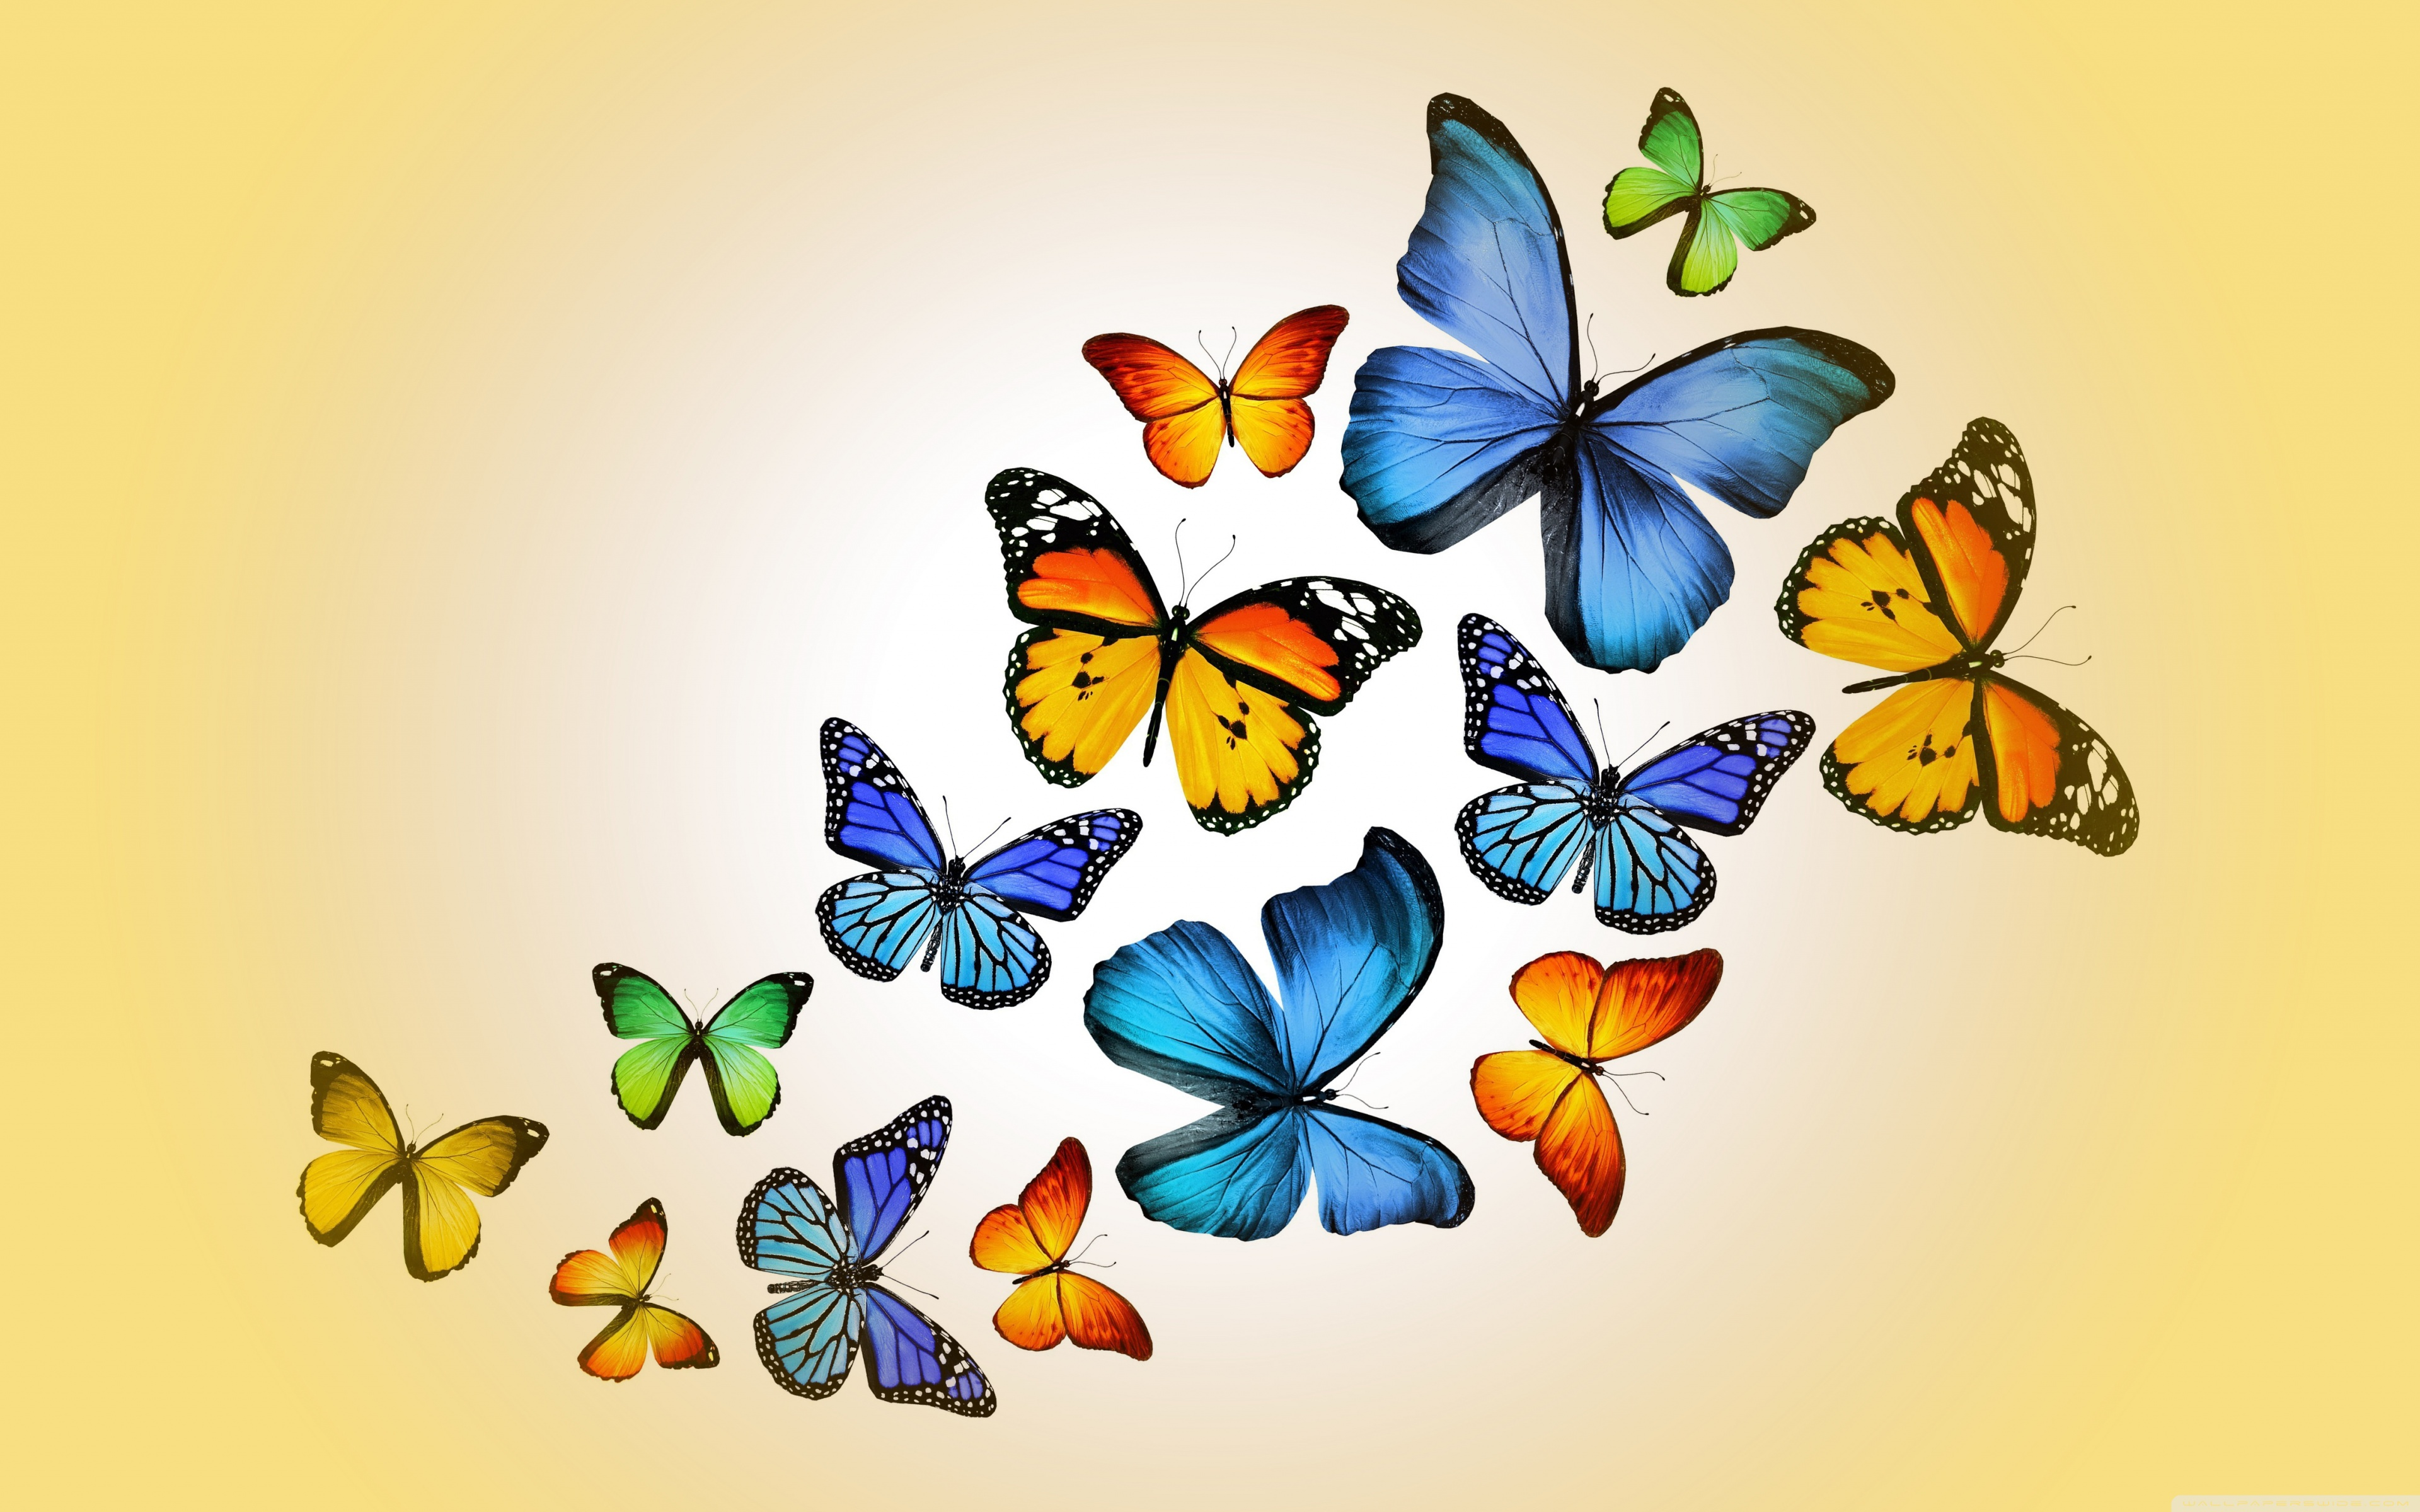 Butterflies 4K HD Desktop Wallpaper for 4K Ultra HD TV Wide 3840x2400